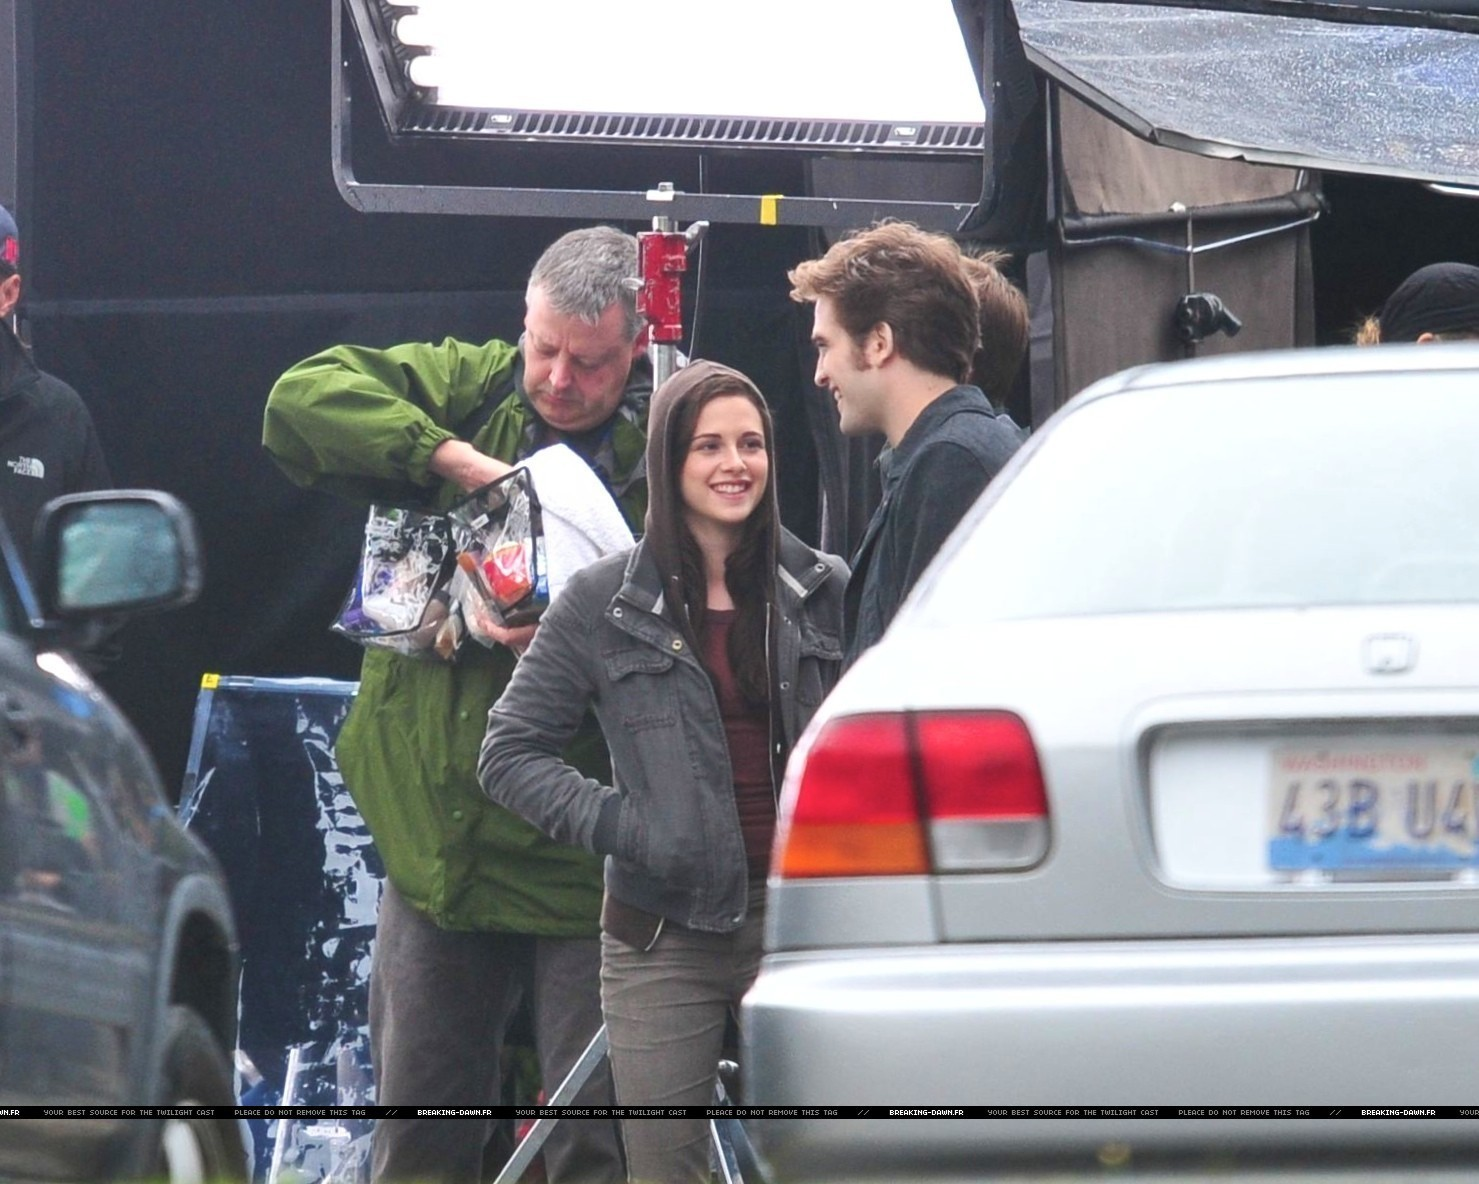 http://images2.fanpop.com/images/photos/8000000/Rob-kristen-on-the-set-of-Eclipse-yesterday-twilight-series-8080087-1479-1184.jpg